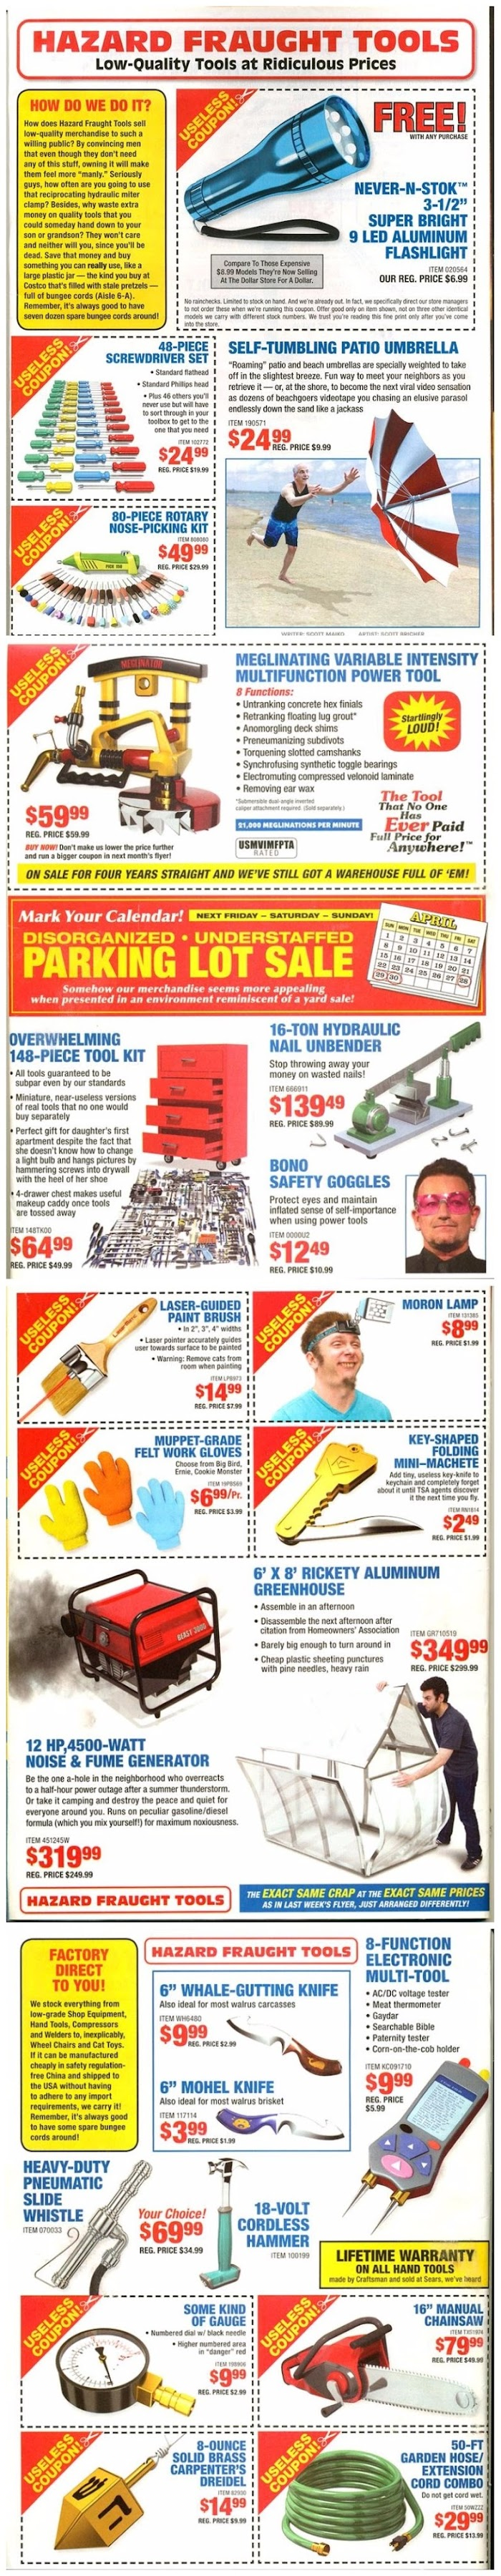 Funny Hazard Fraught Tools Sale - Low Quality at Ridiculous Prices Joke Picture